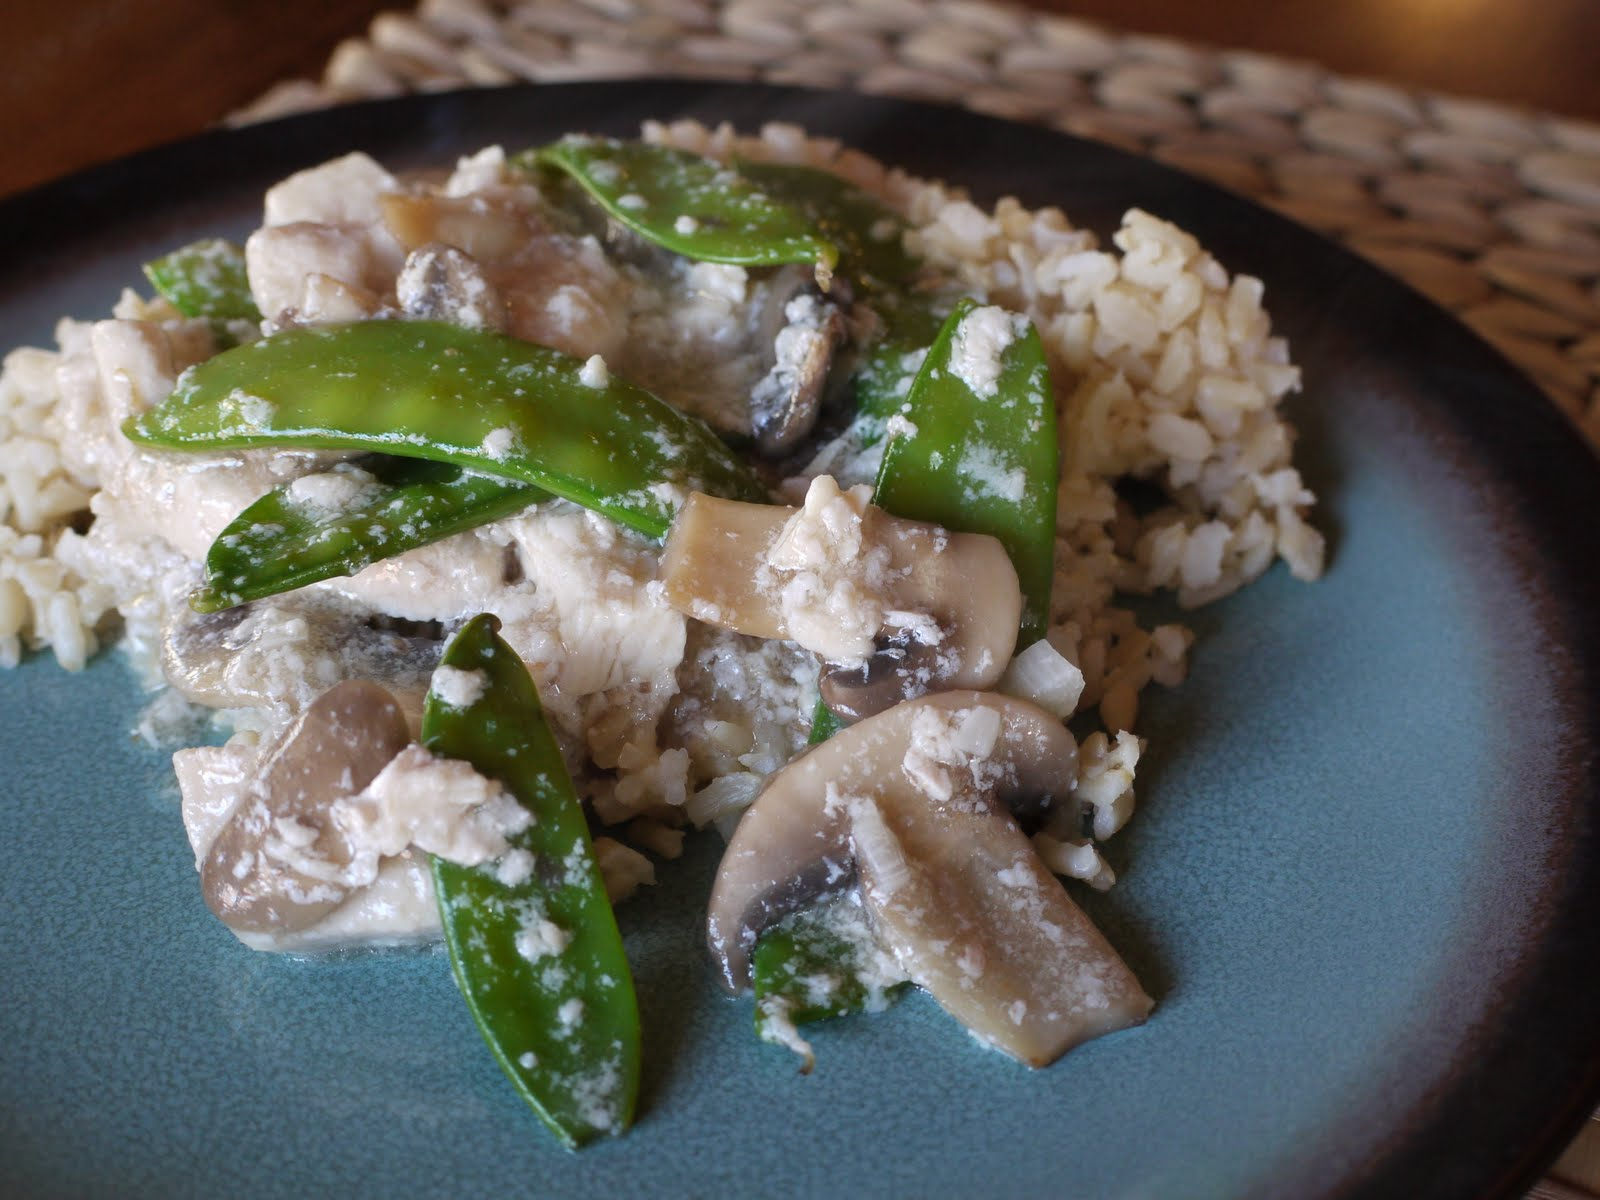 Moo Goo GAI Pan http://bad-girls-kitchen.blogspot.com/2010/04/taste-create-moo-goo-gai-pan.html